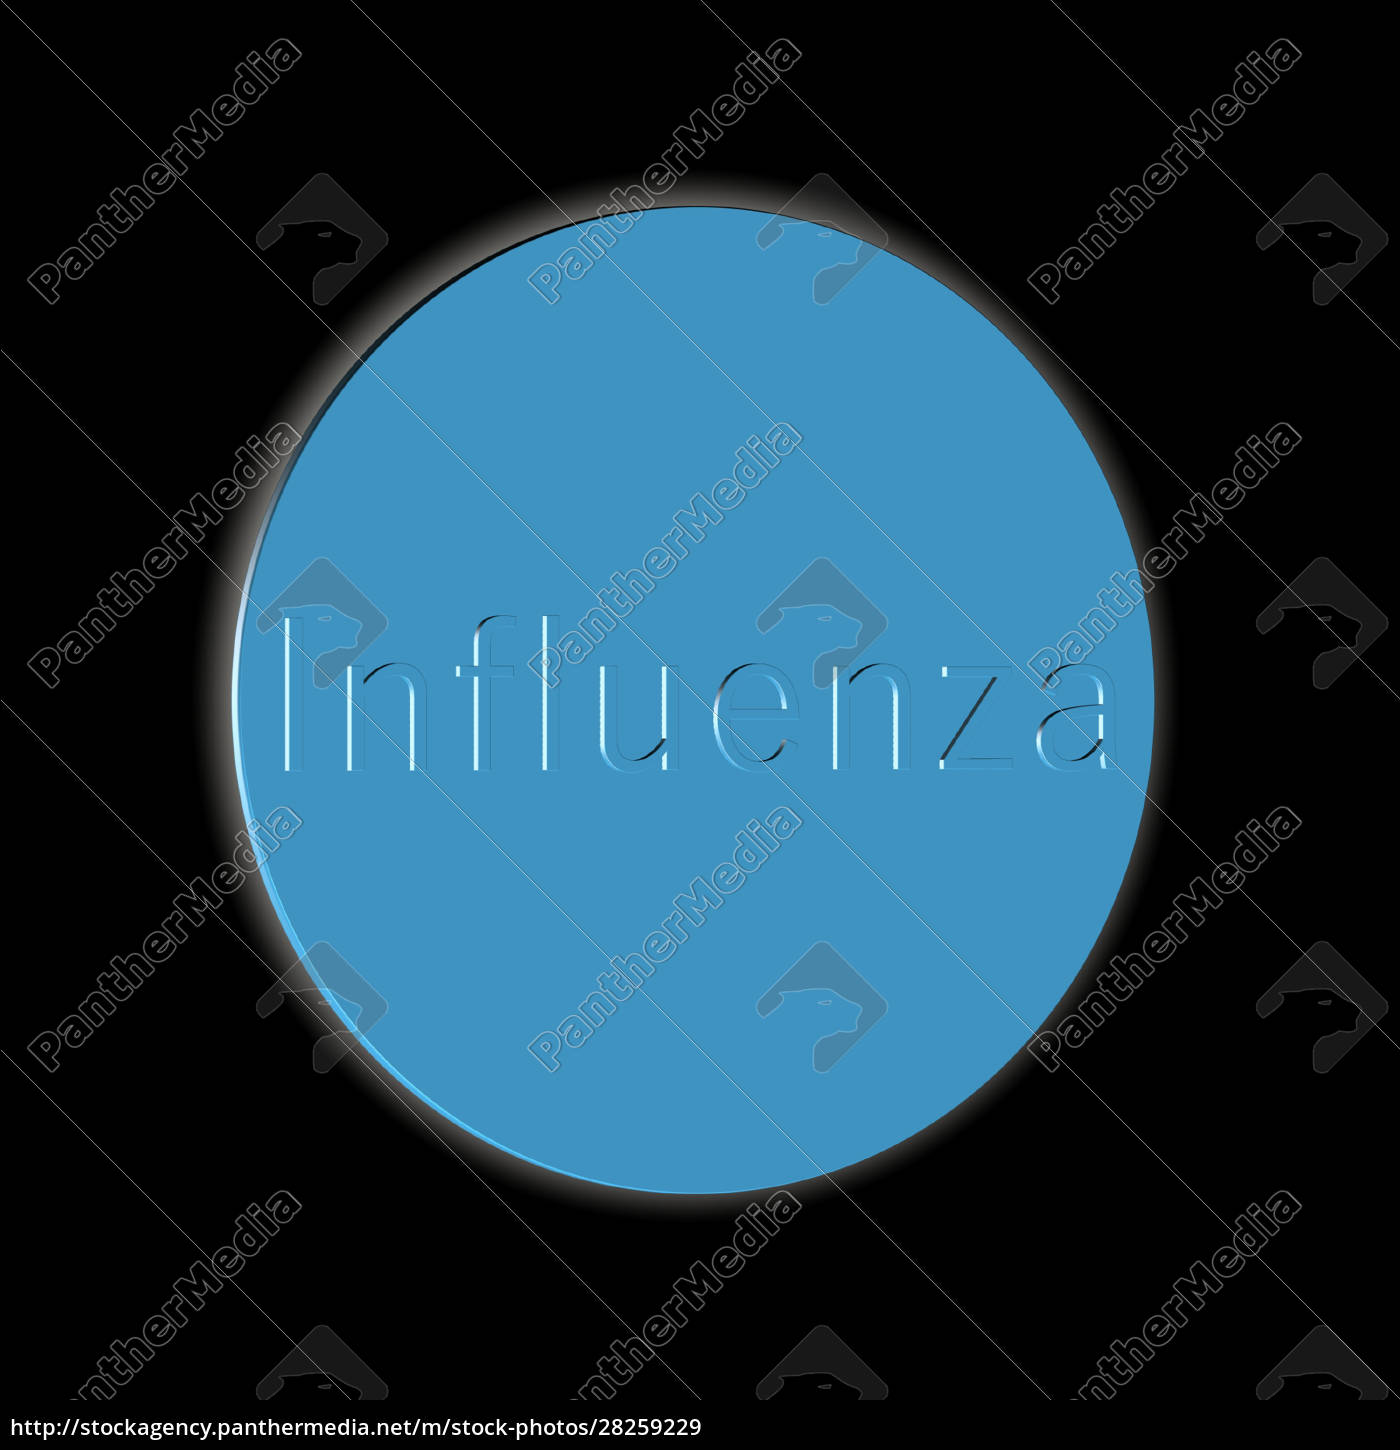 influenza, -, word, or, text, as - 28259229